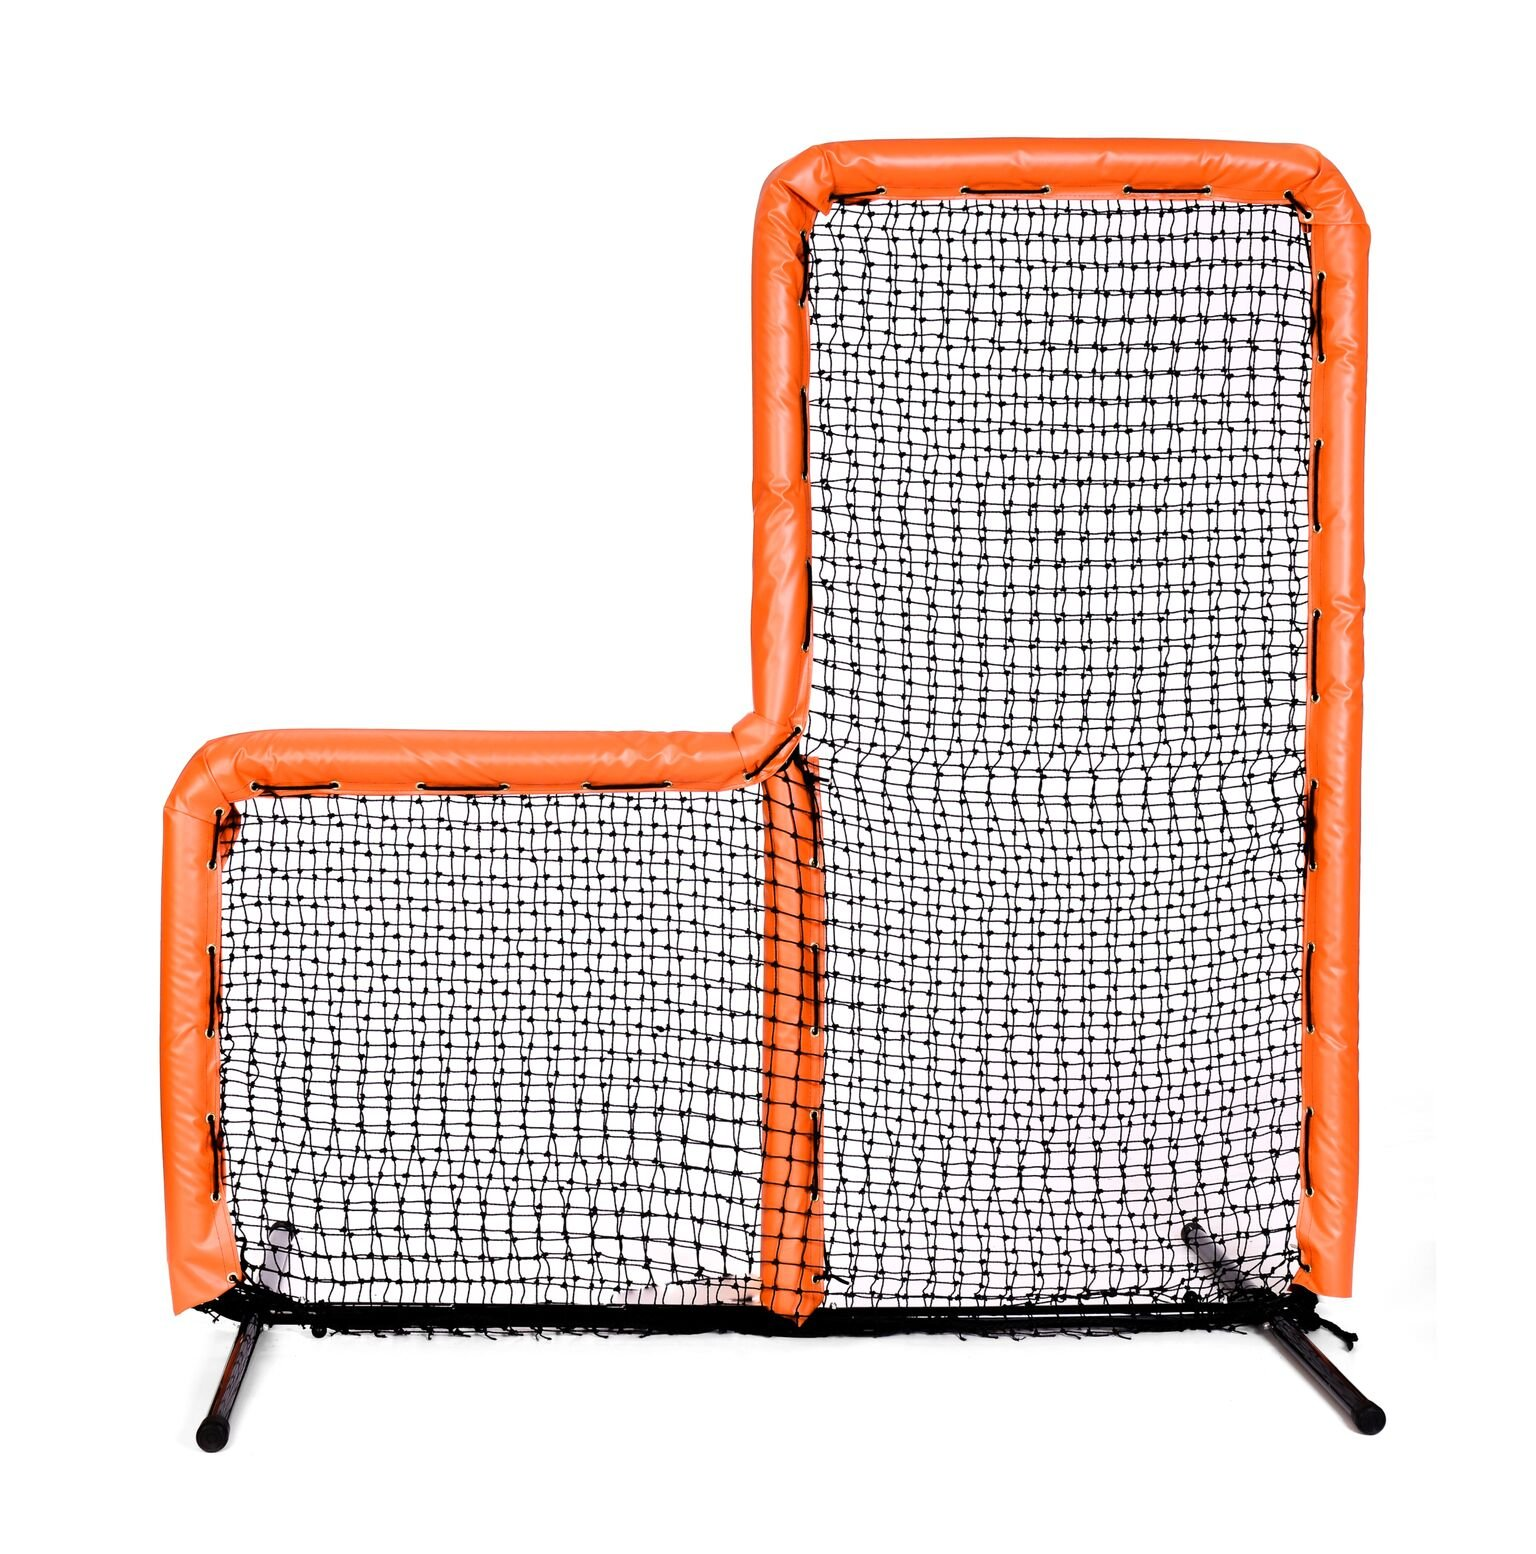 Armor Series Pitching Screen Baseball Softball Practice Net with Screen Bulletz Leg Caps. 7x7 L-Screen Perfect for Baseball and Softball Batting Practice. Choose Padding Color. (Orange) by Armor